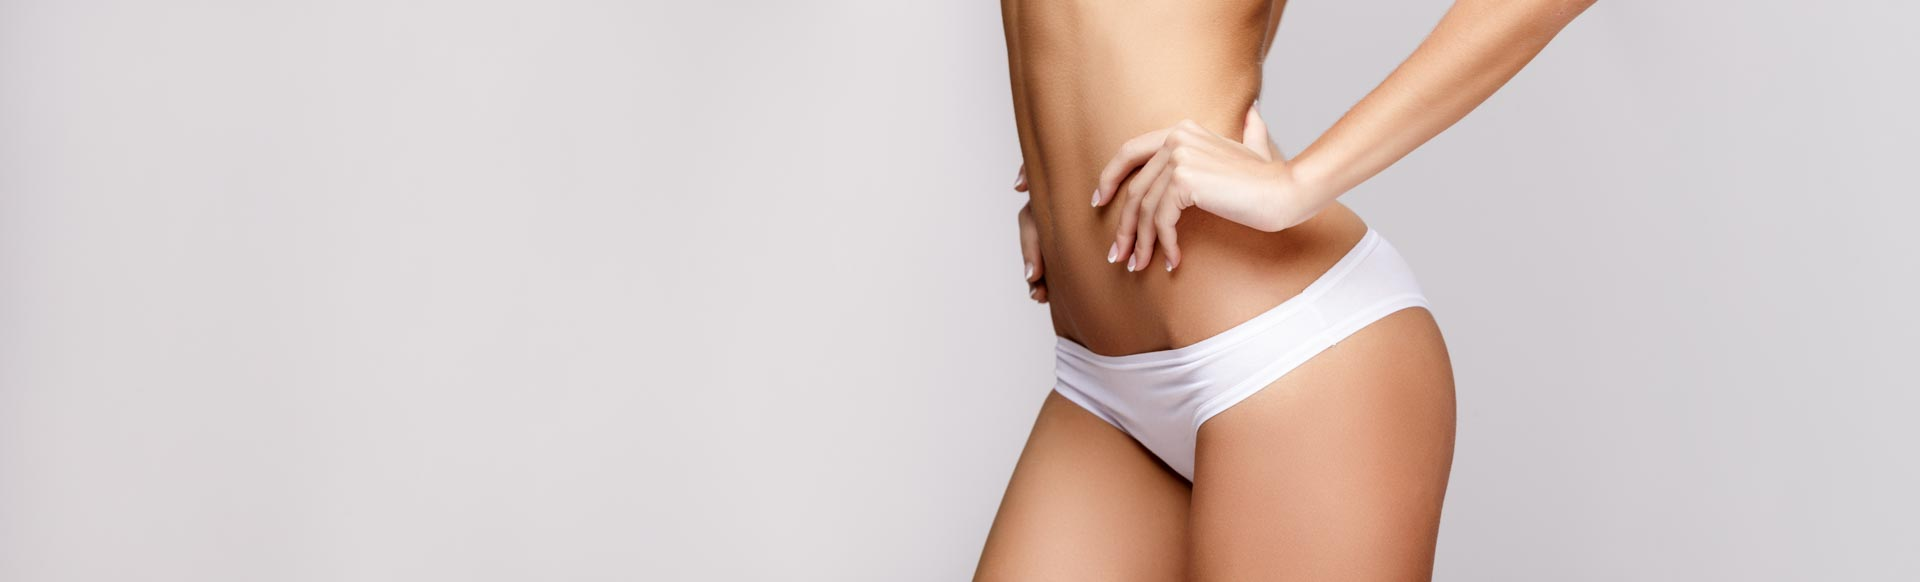 Wow, It's Qwo! </br>New Cellulite Treatment